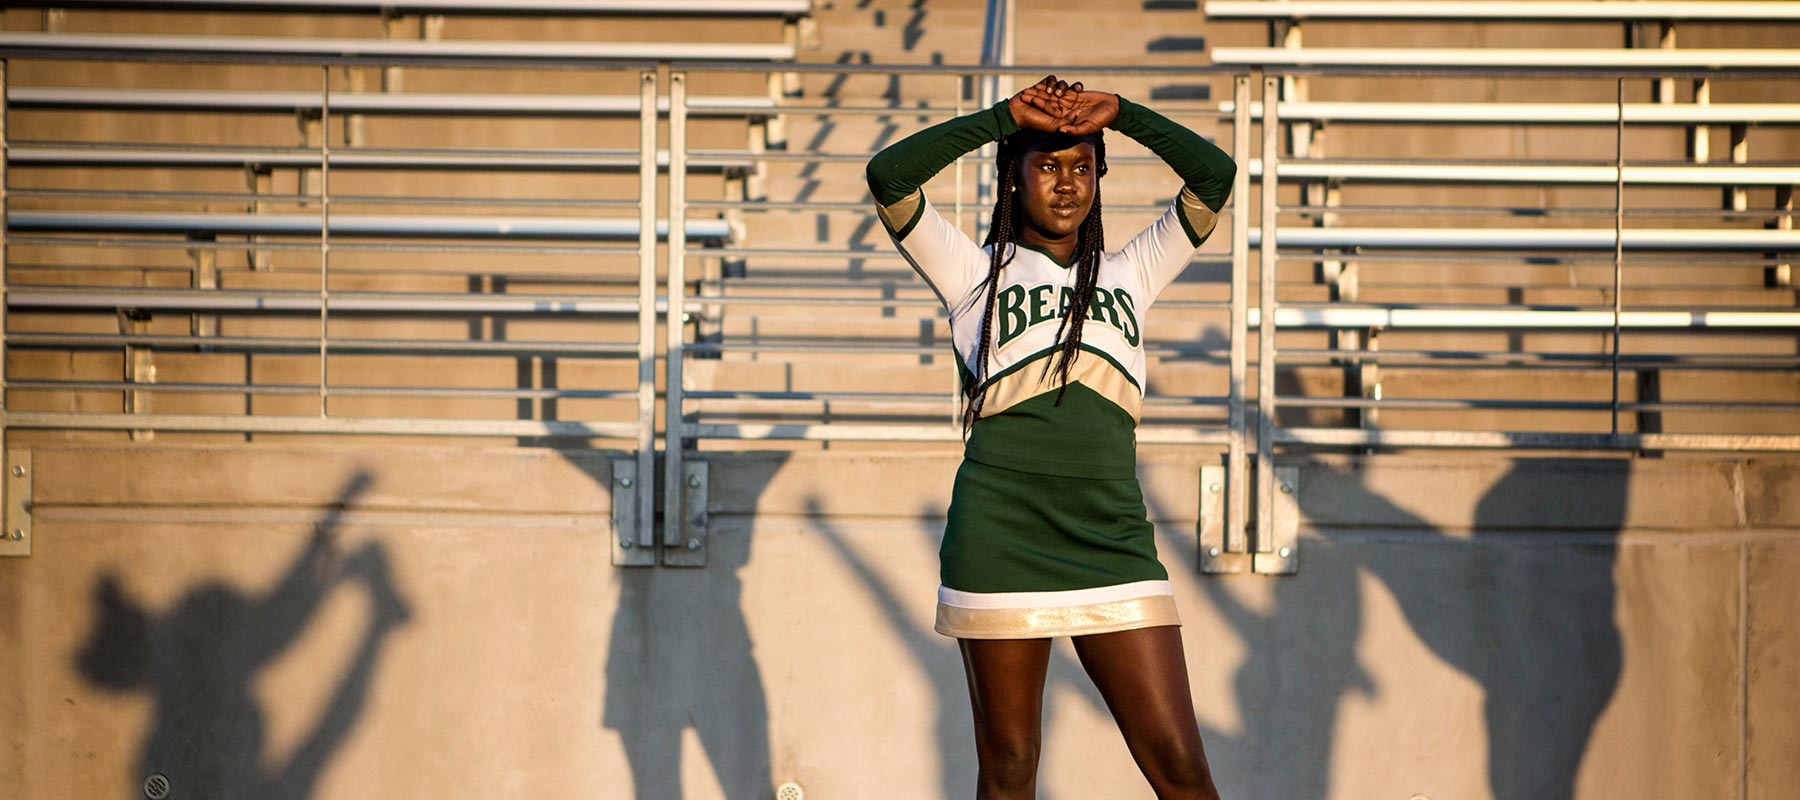 Nyakan Timbek, a senior cheerleader at Omaha Bryan, blocks the sun from her eyes while her team practices kicks.